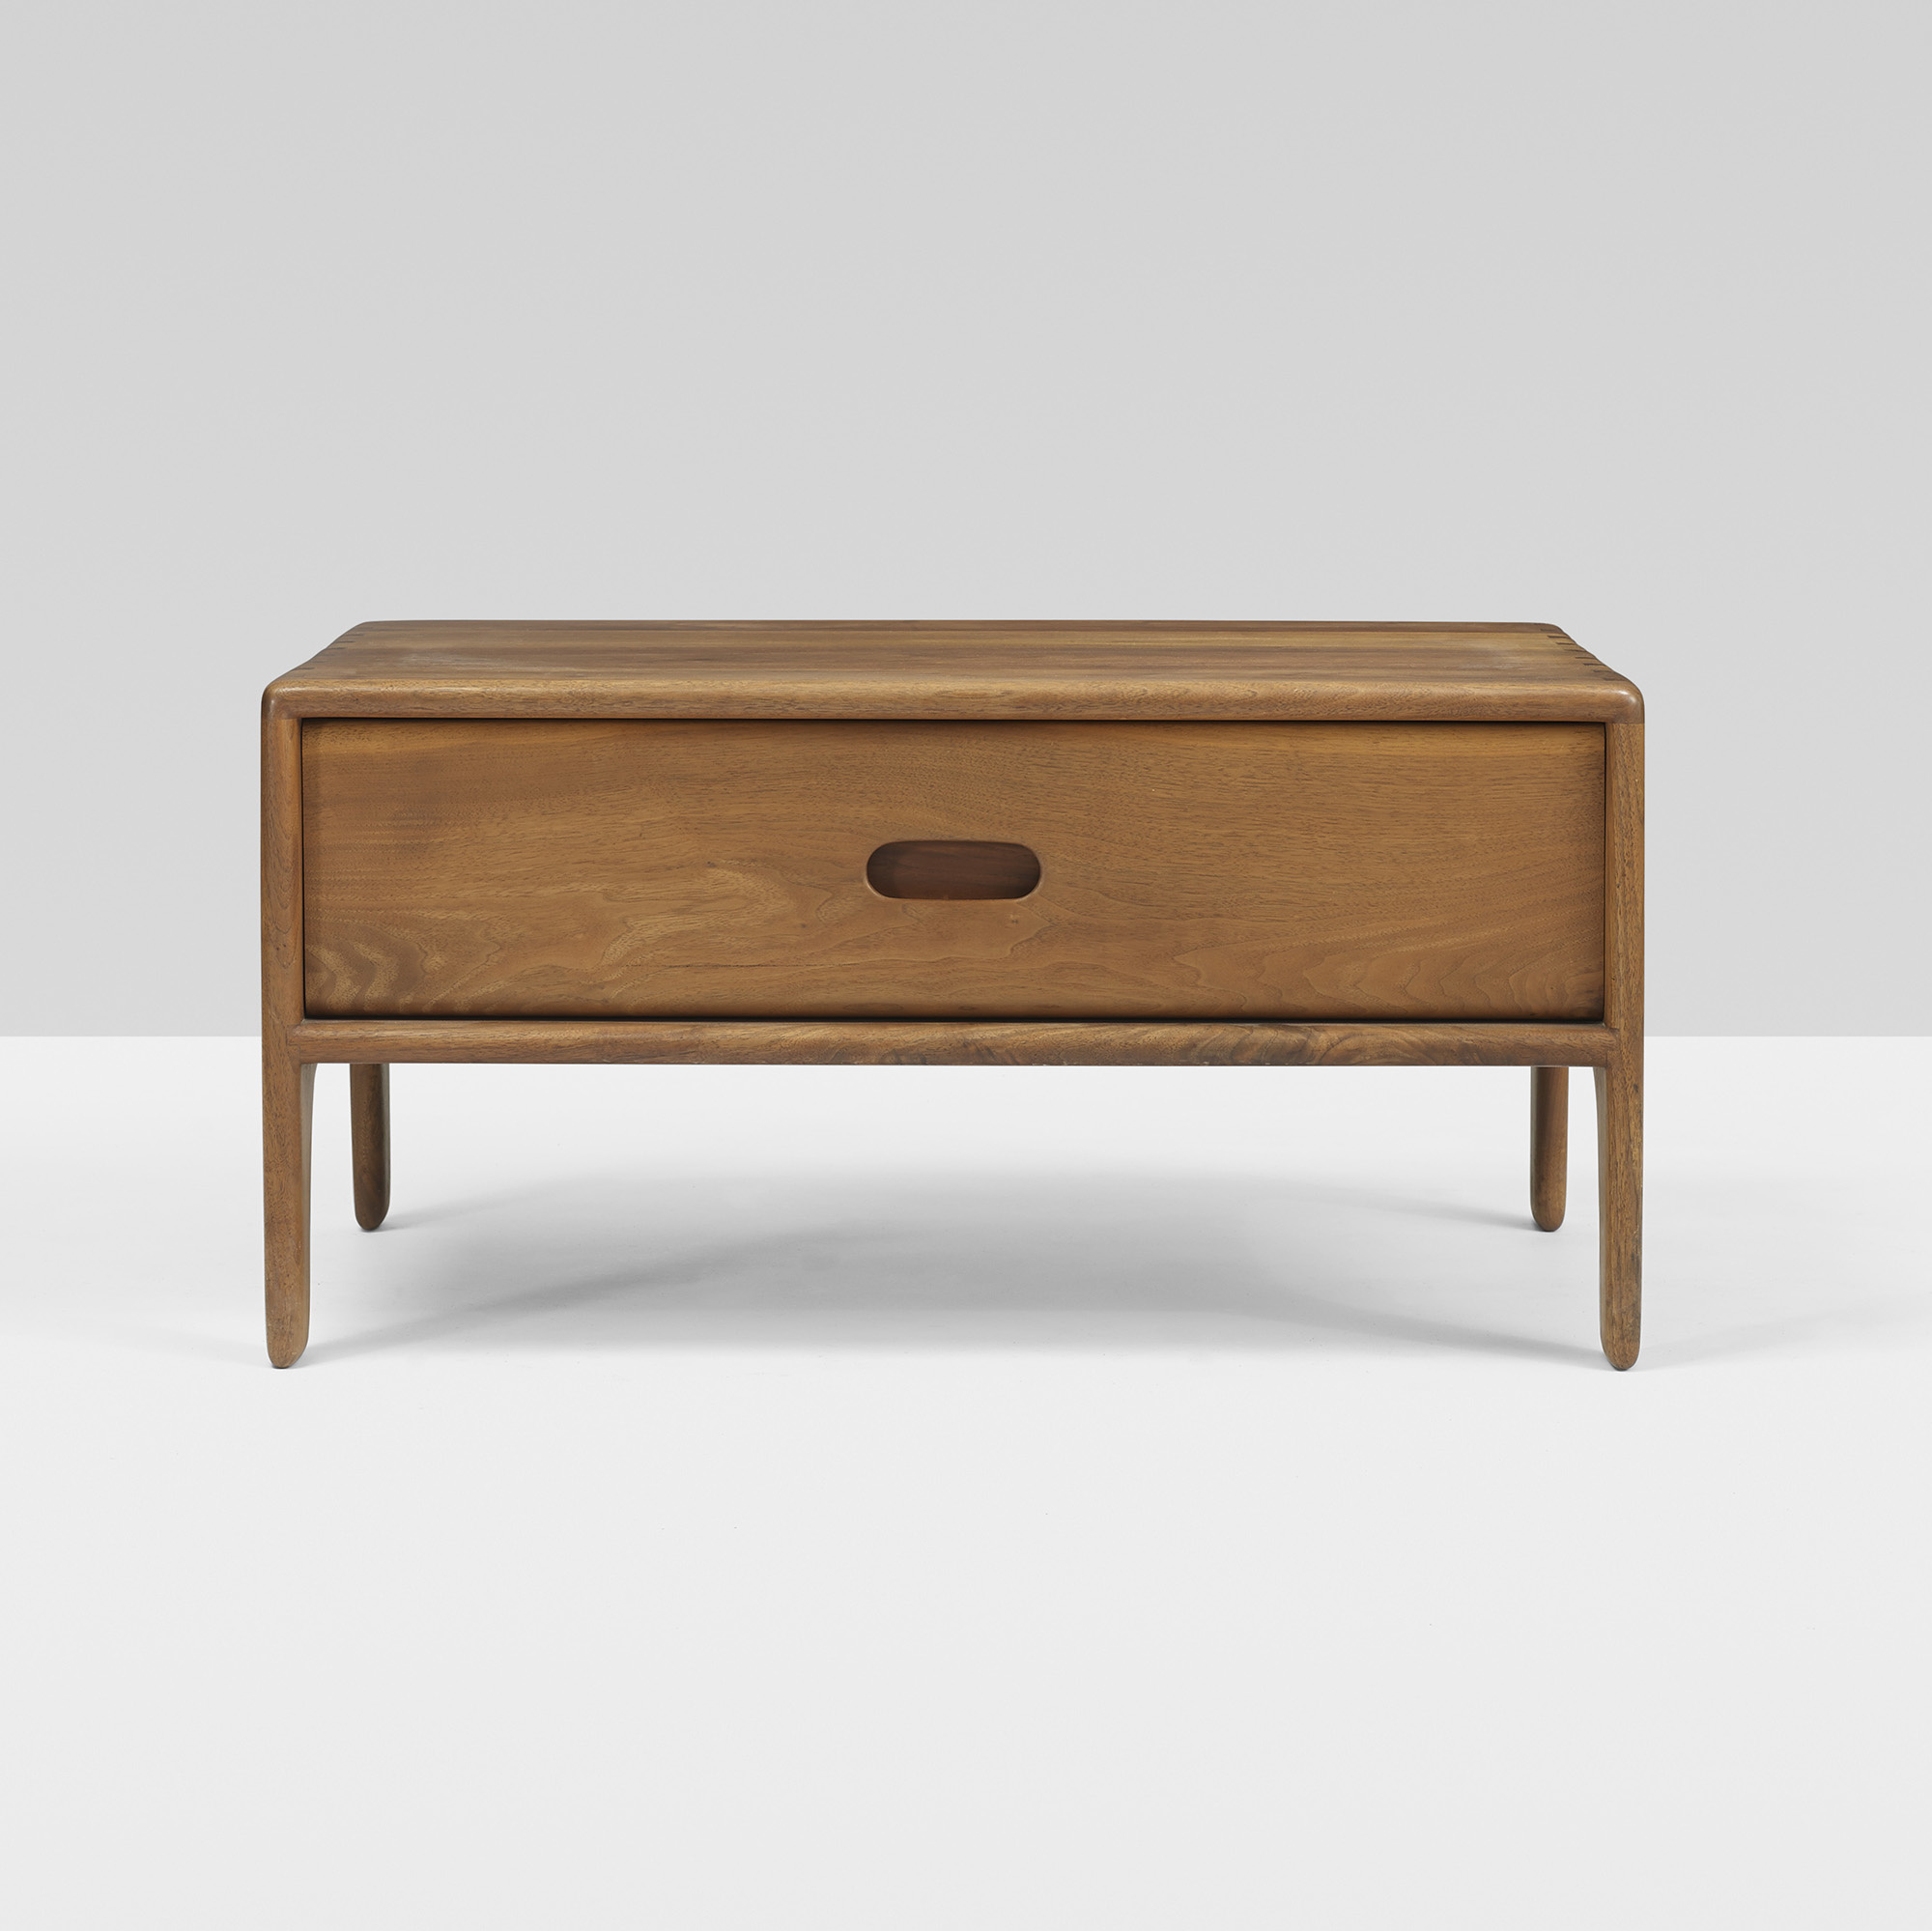 sam maloof  low table and nightstand  design  june   -  sam maloof  low table and nightstand ( of )